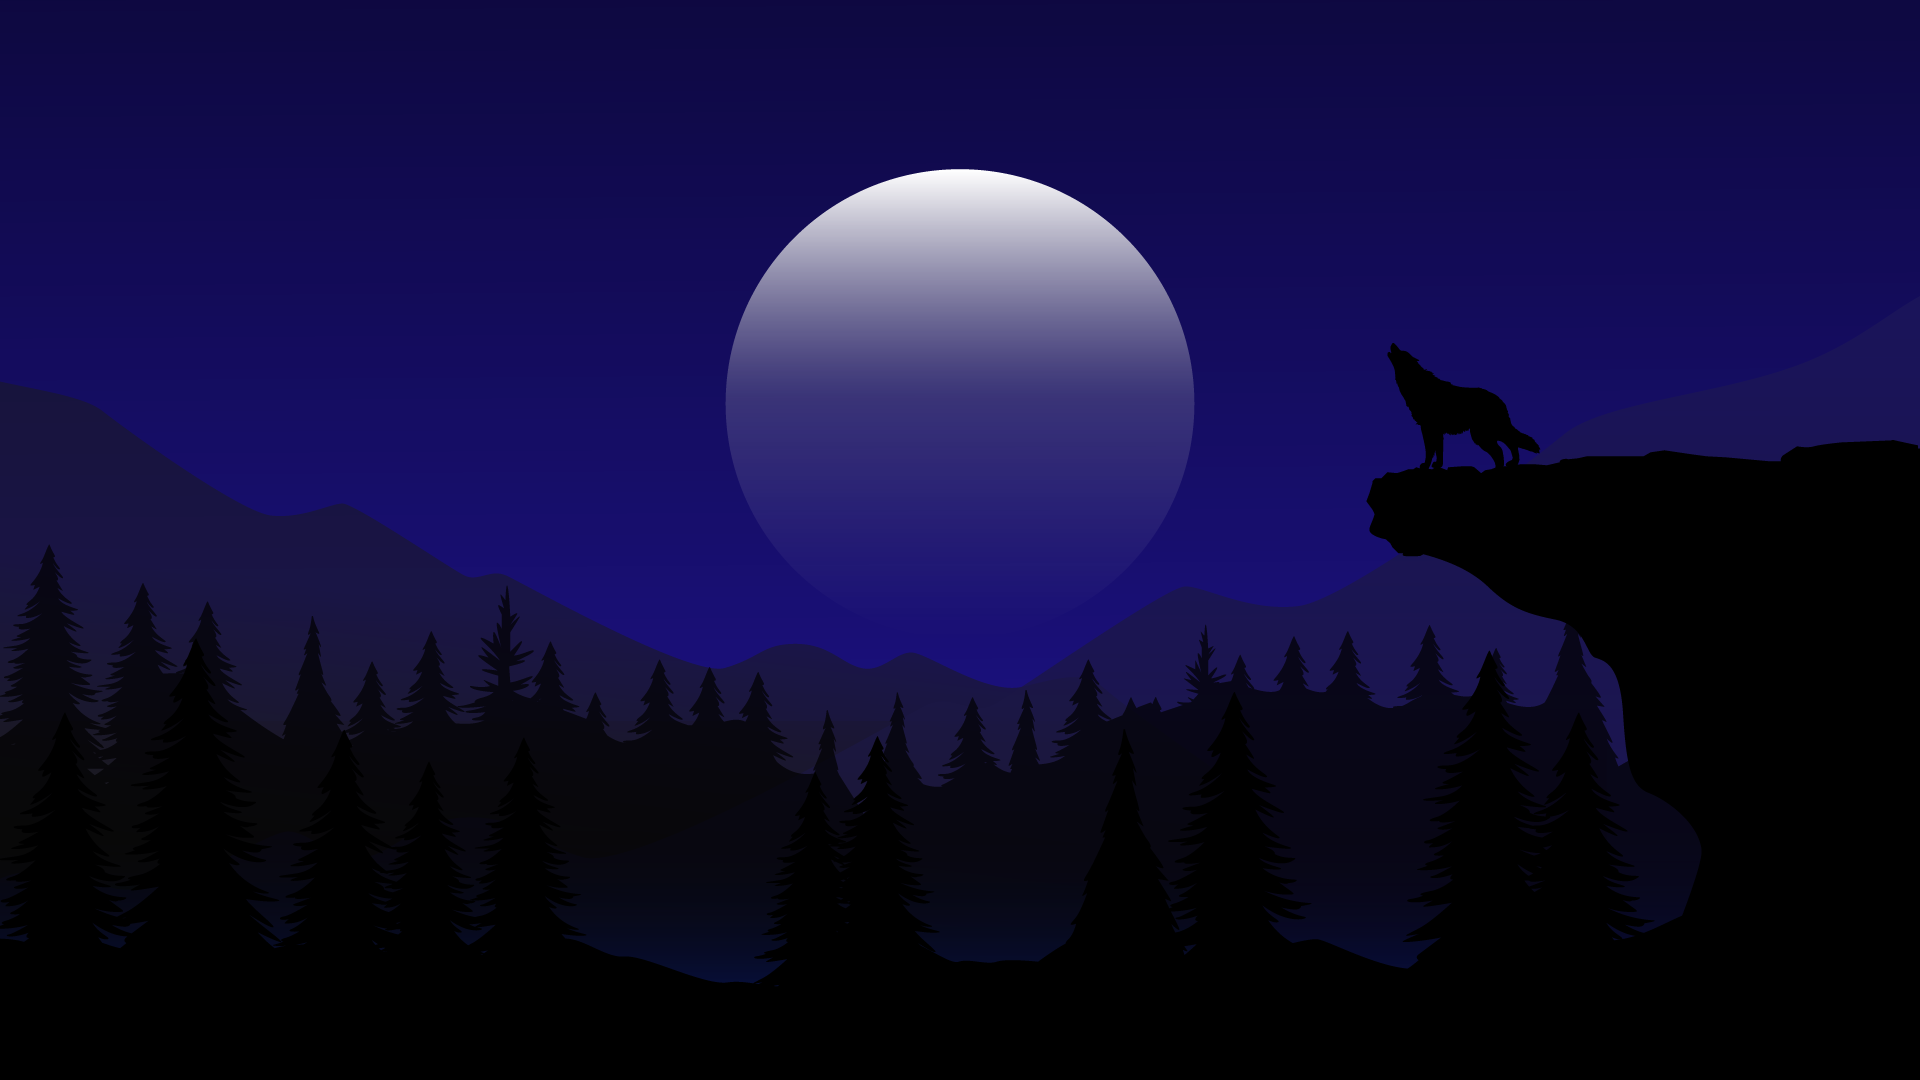 Moon night and wolf howling wallpaper for laptop mac macbook or desktop windows 4k